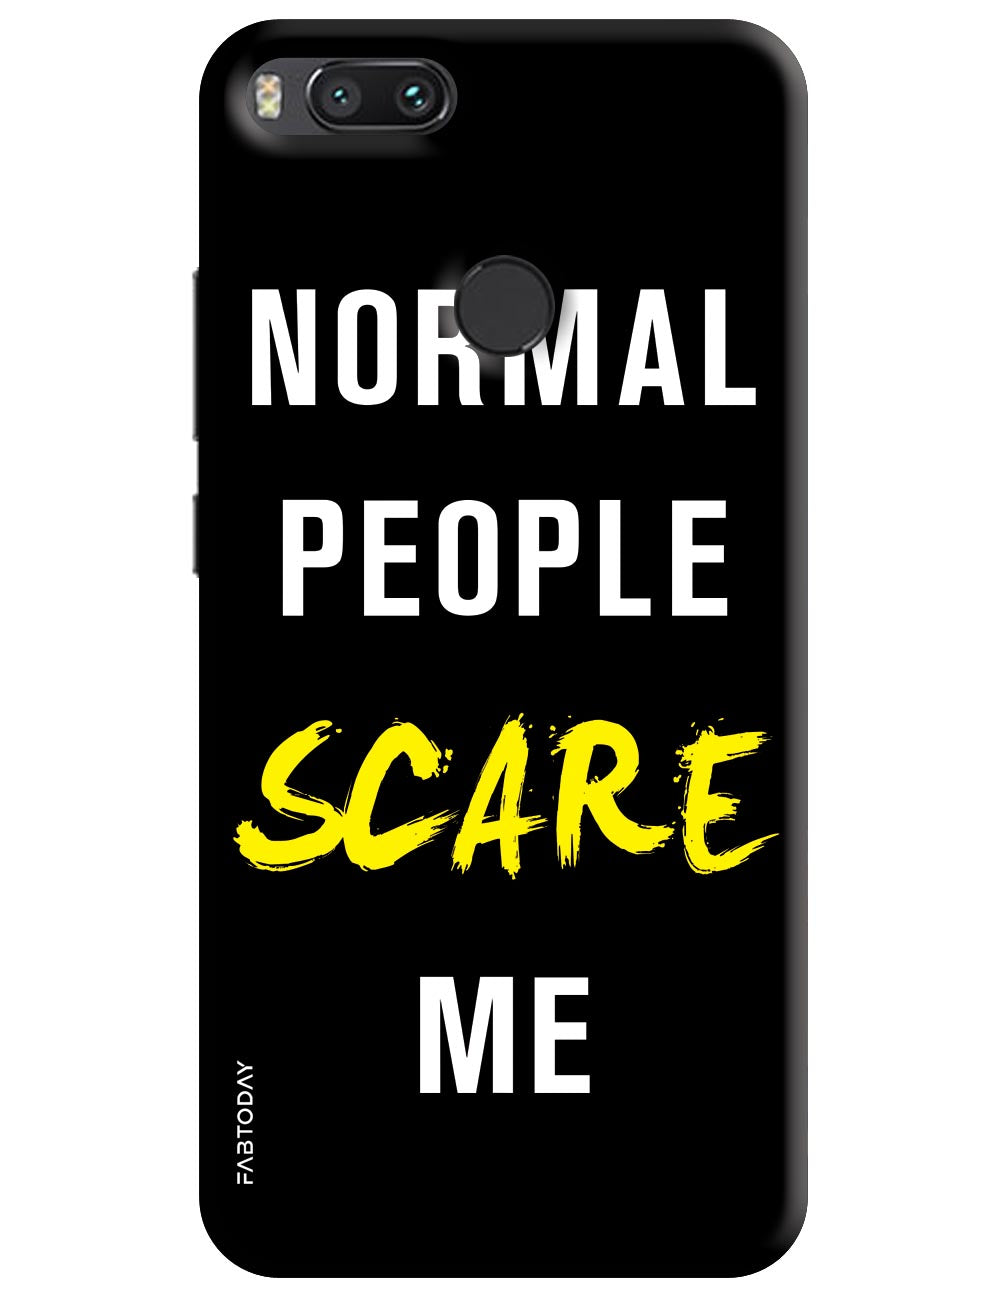 Normal People Scare Me Back Cover for Xiaomi Mi A1